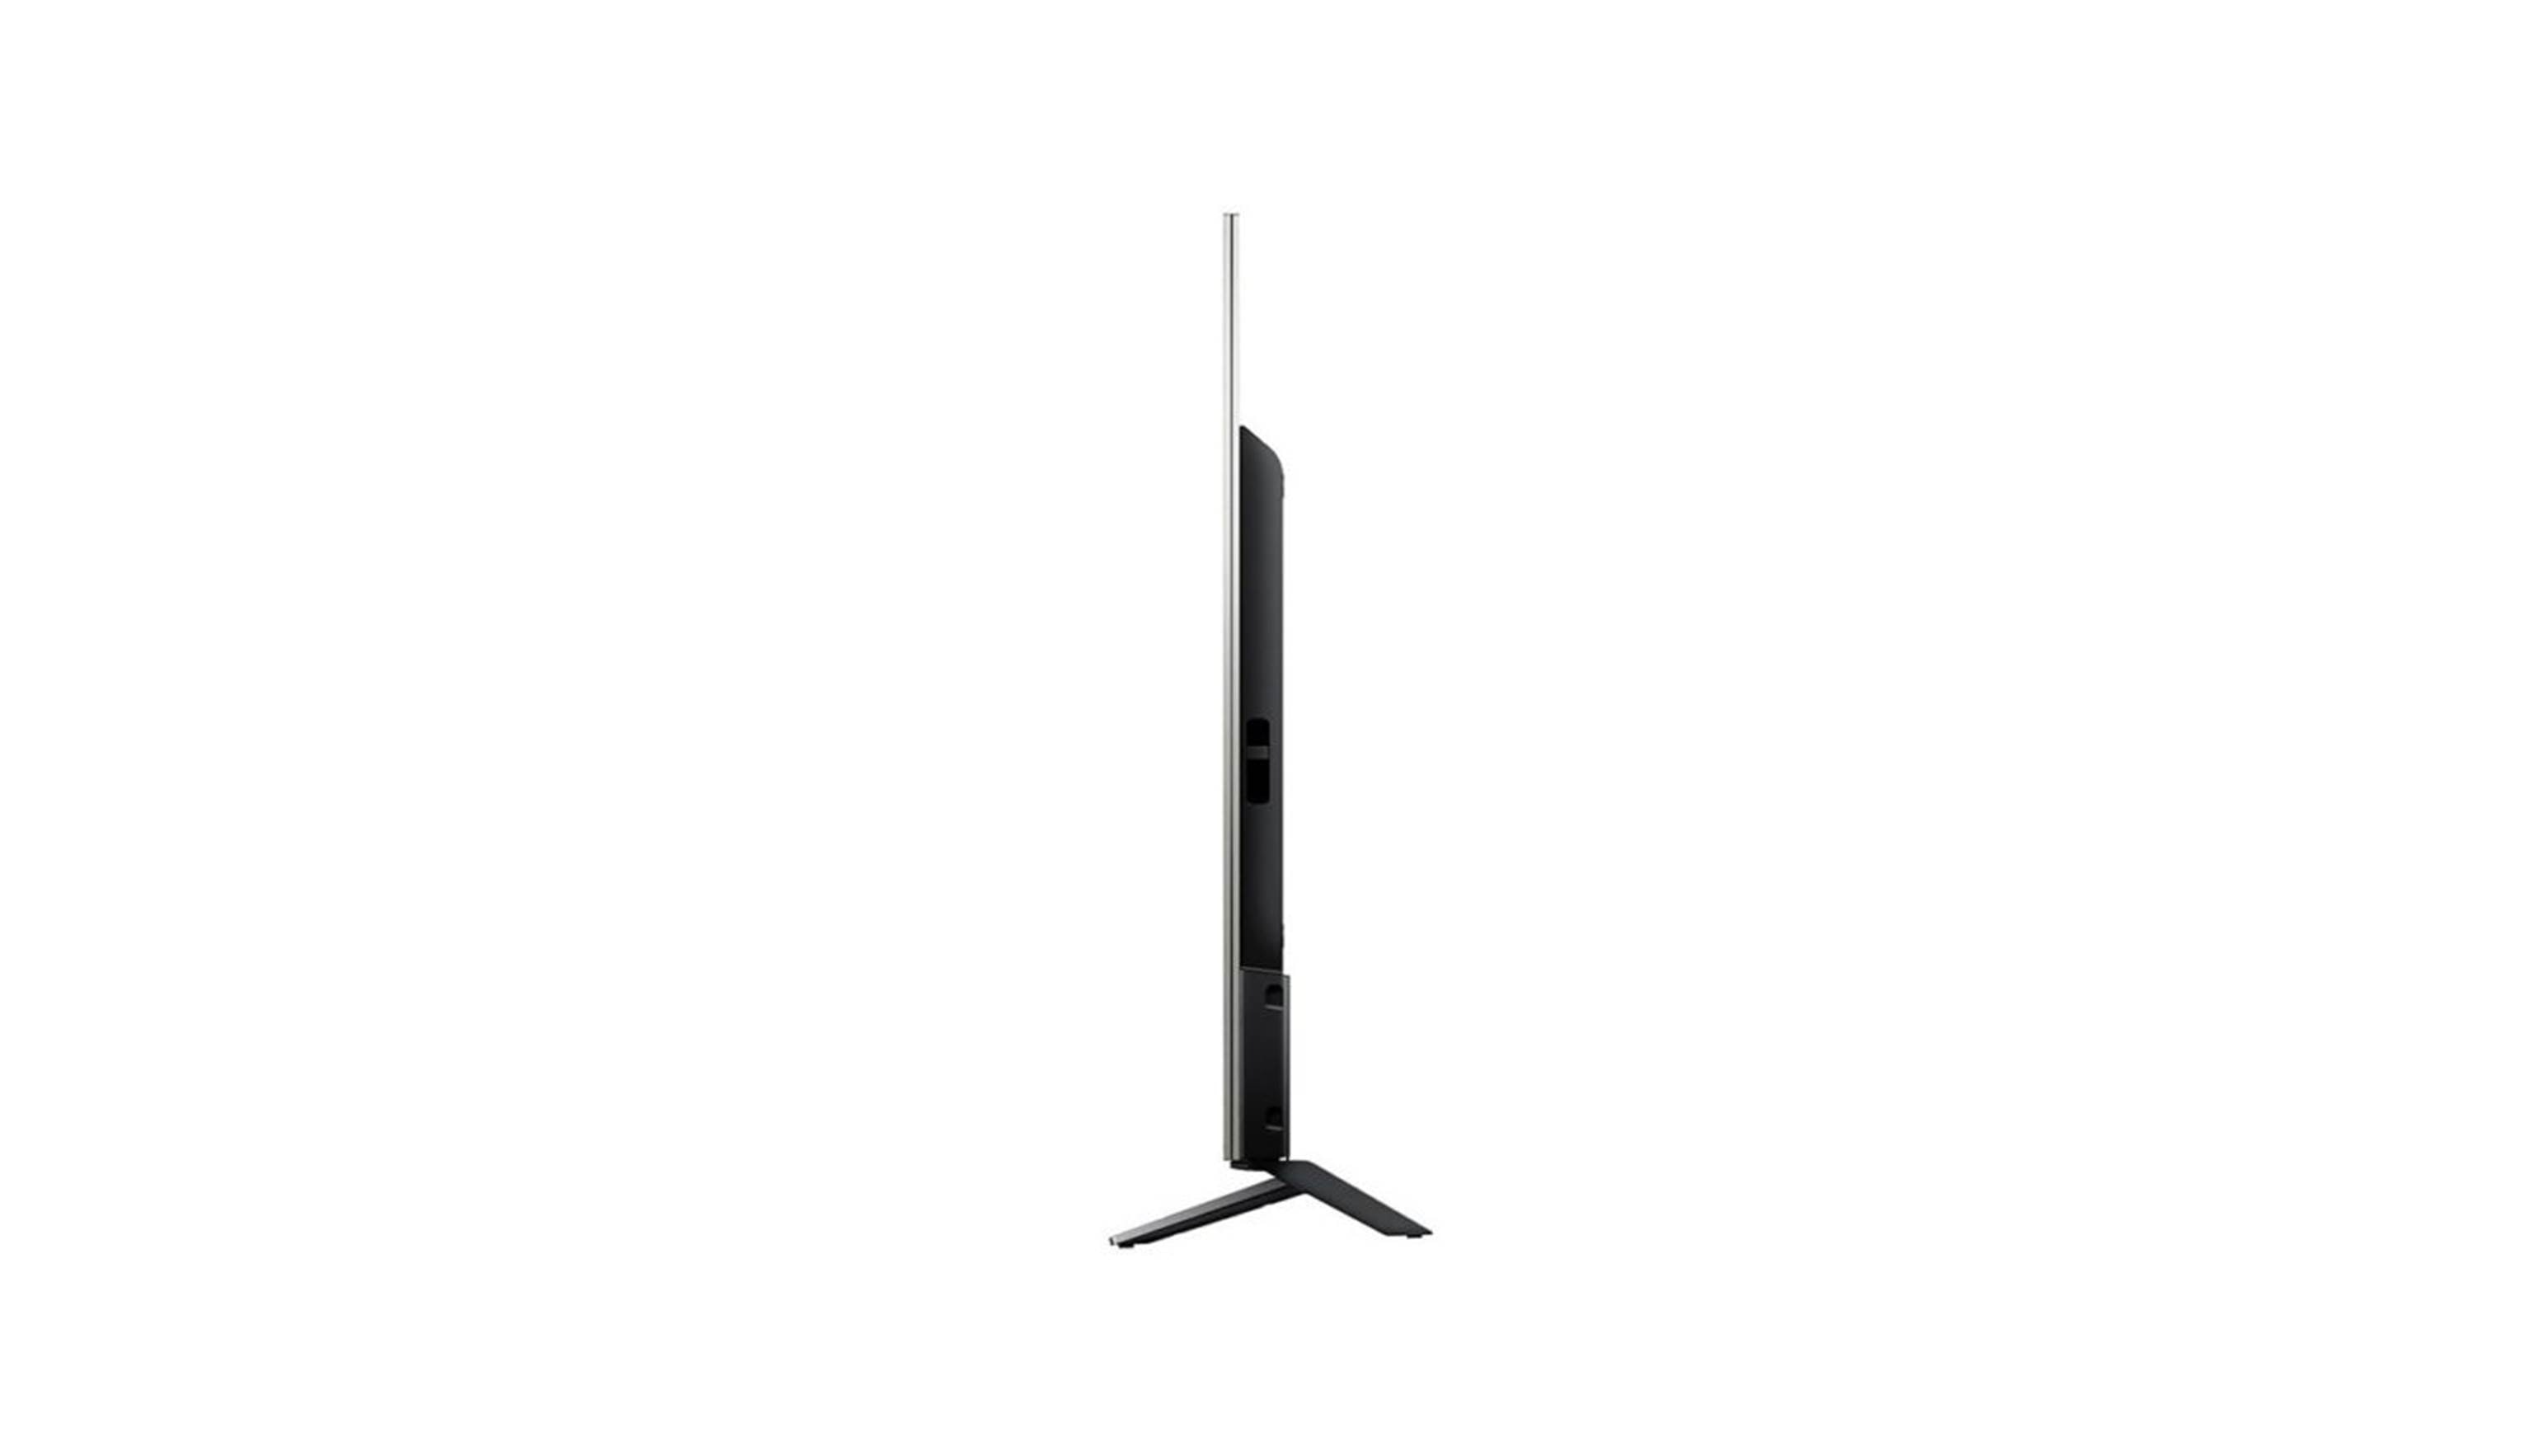 Sony KD-55X8000E 55 4K HDR Android TV - Silver (2)